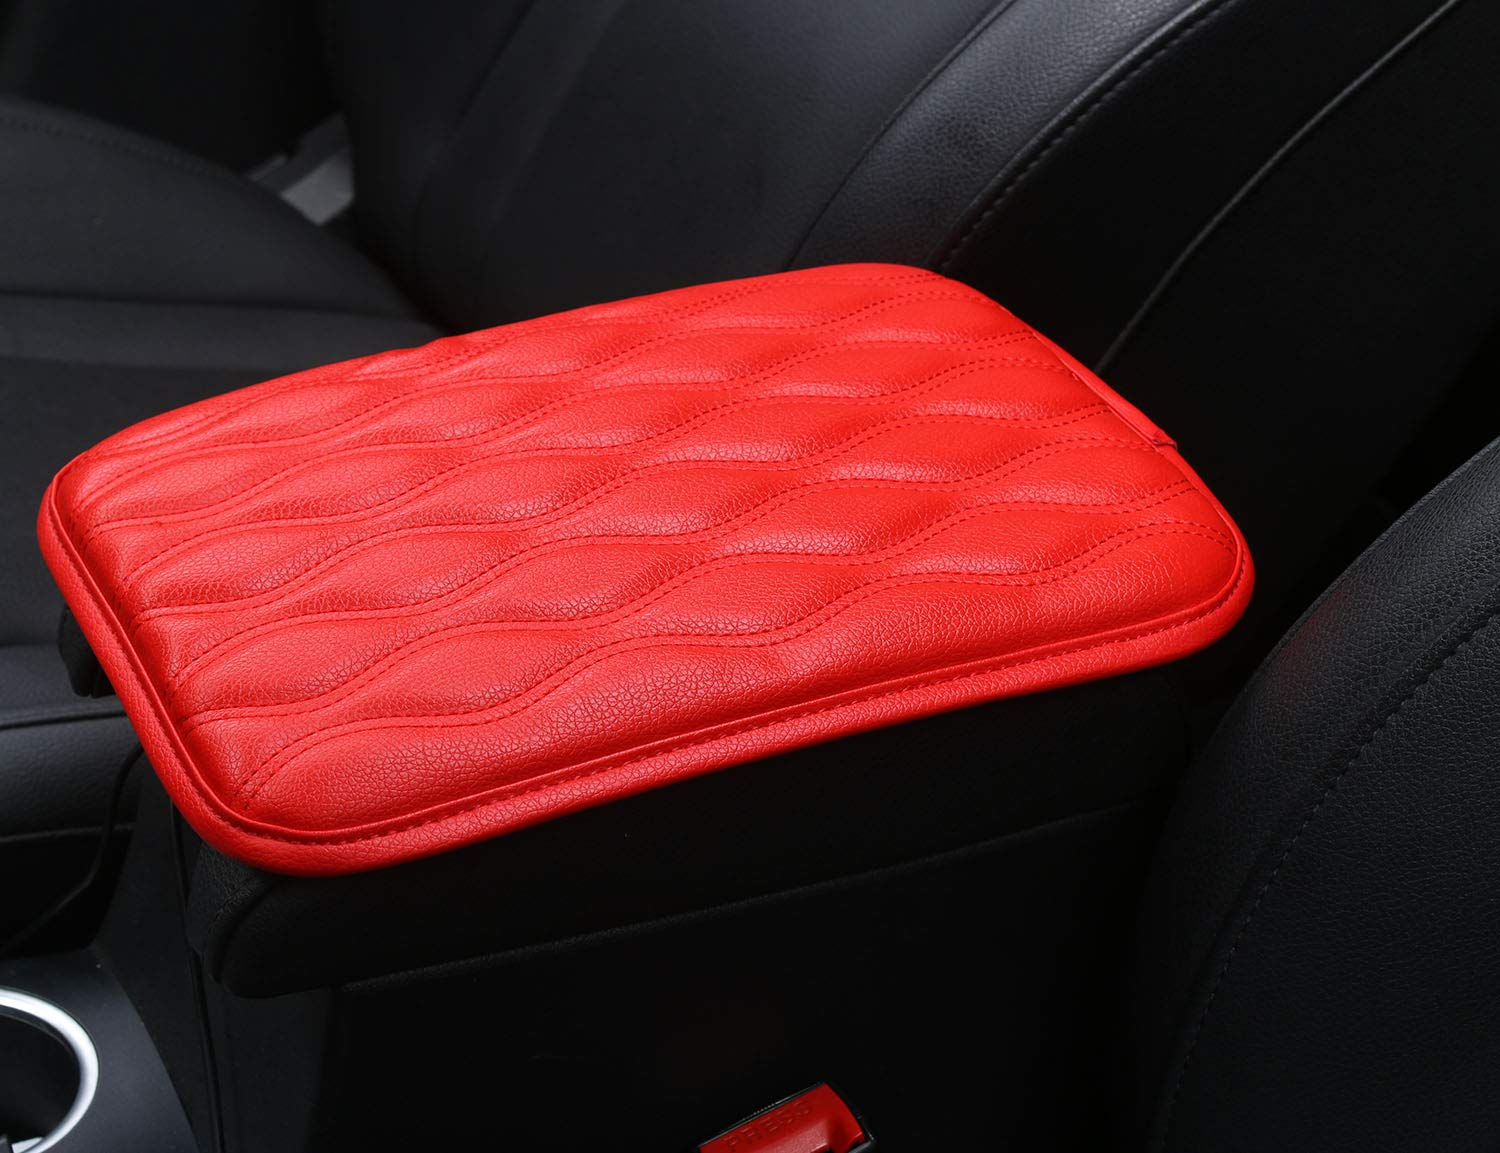 Car Armrest Seat Box Cover Protector Universal Fit C-Brown Alusbell Auto Center Console Pad